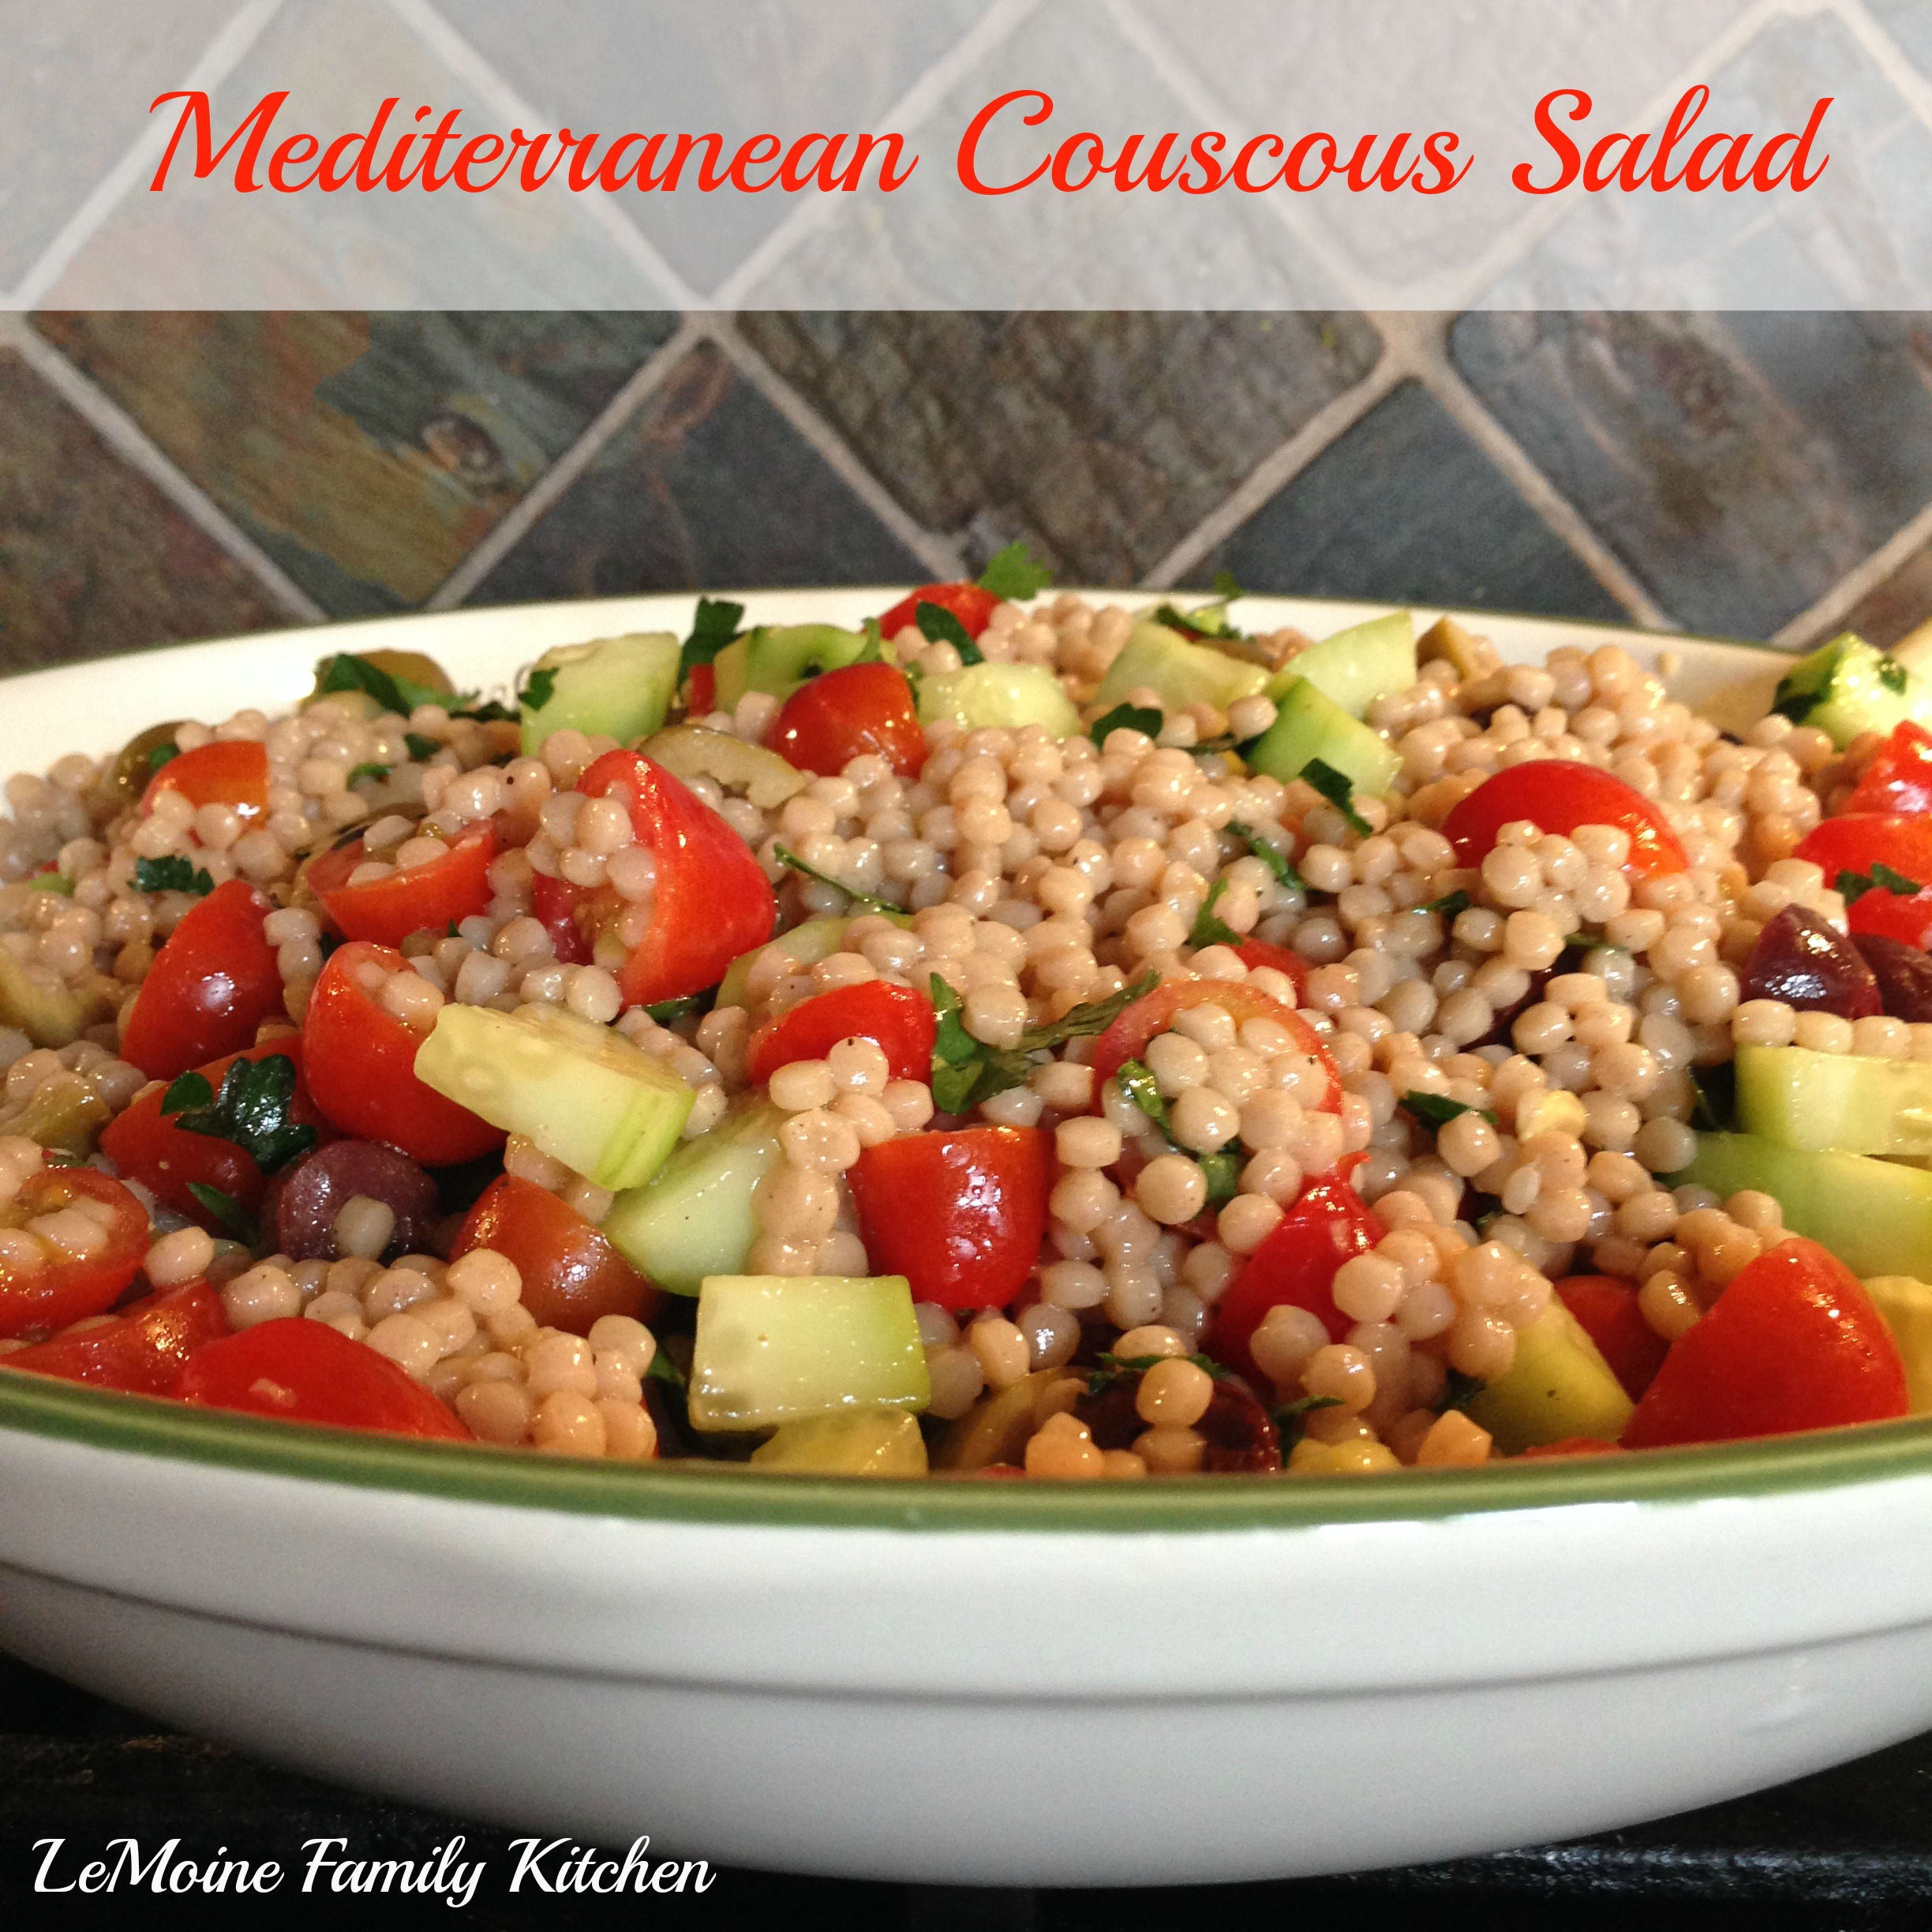 ... Recipes, Cooking Tips, and Food News | Mediterranean Couscous Salad